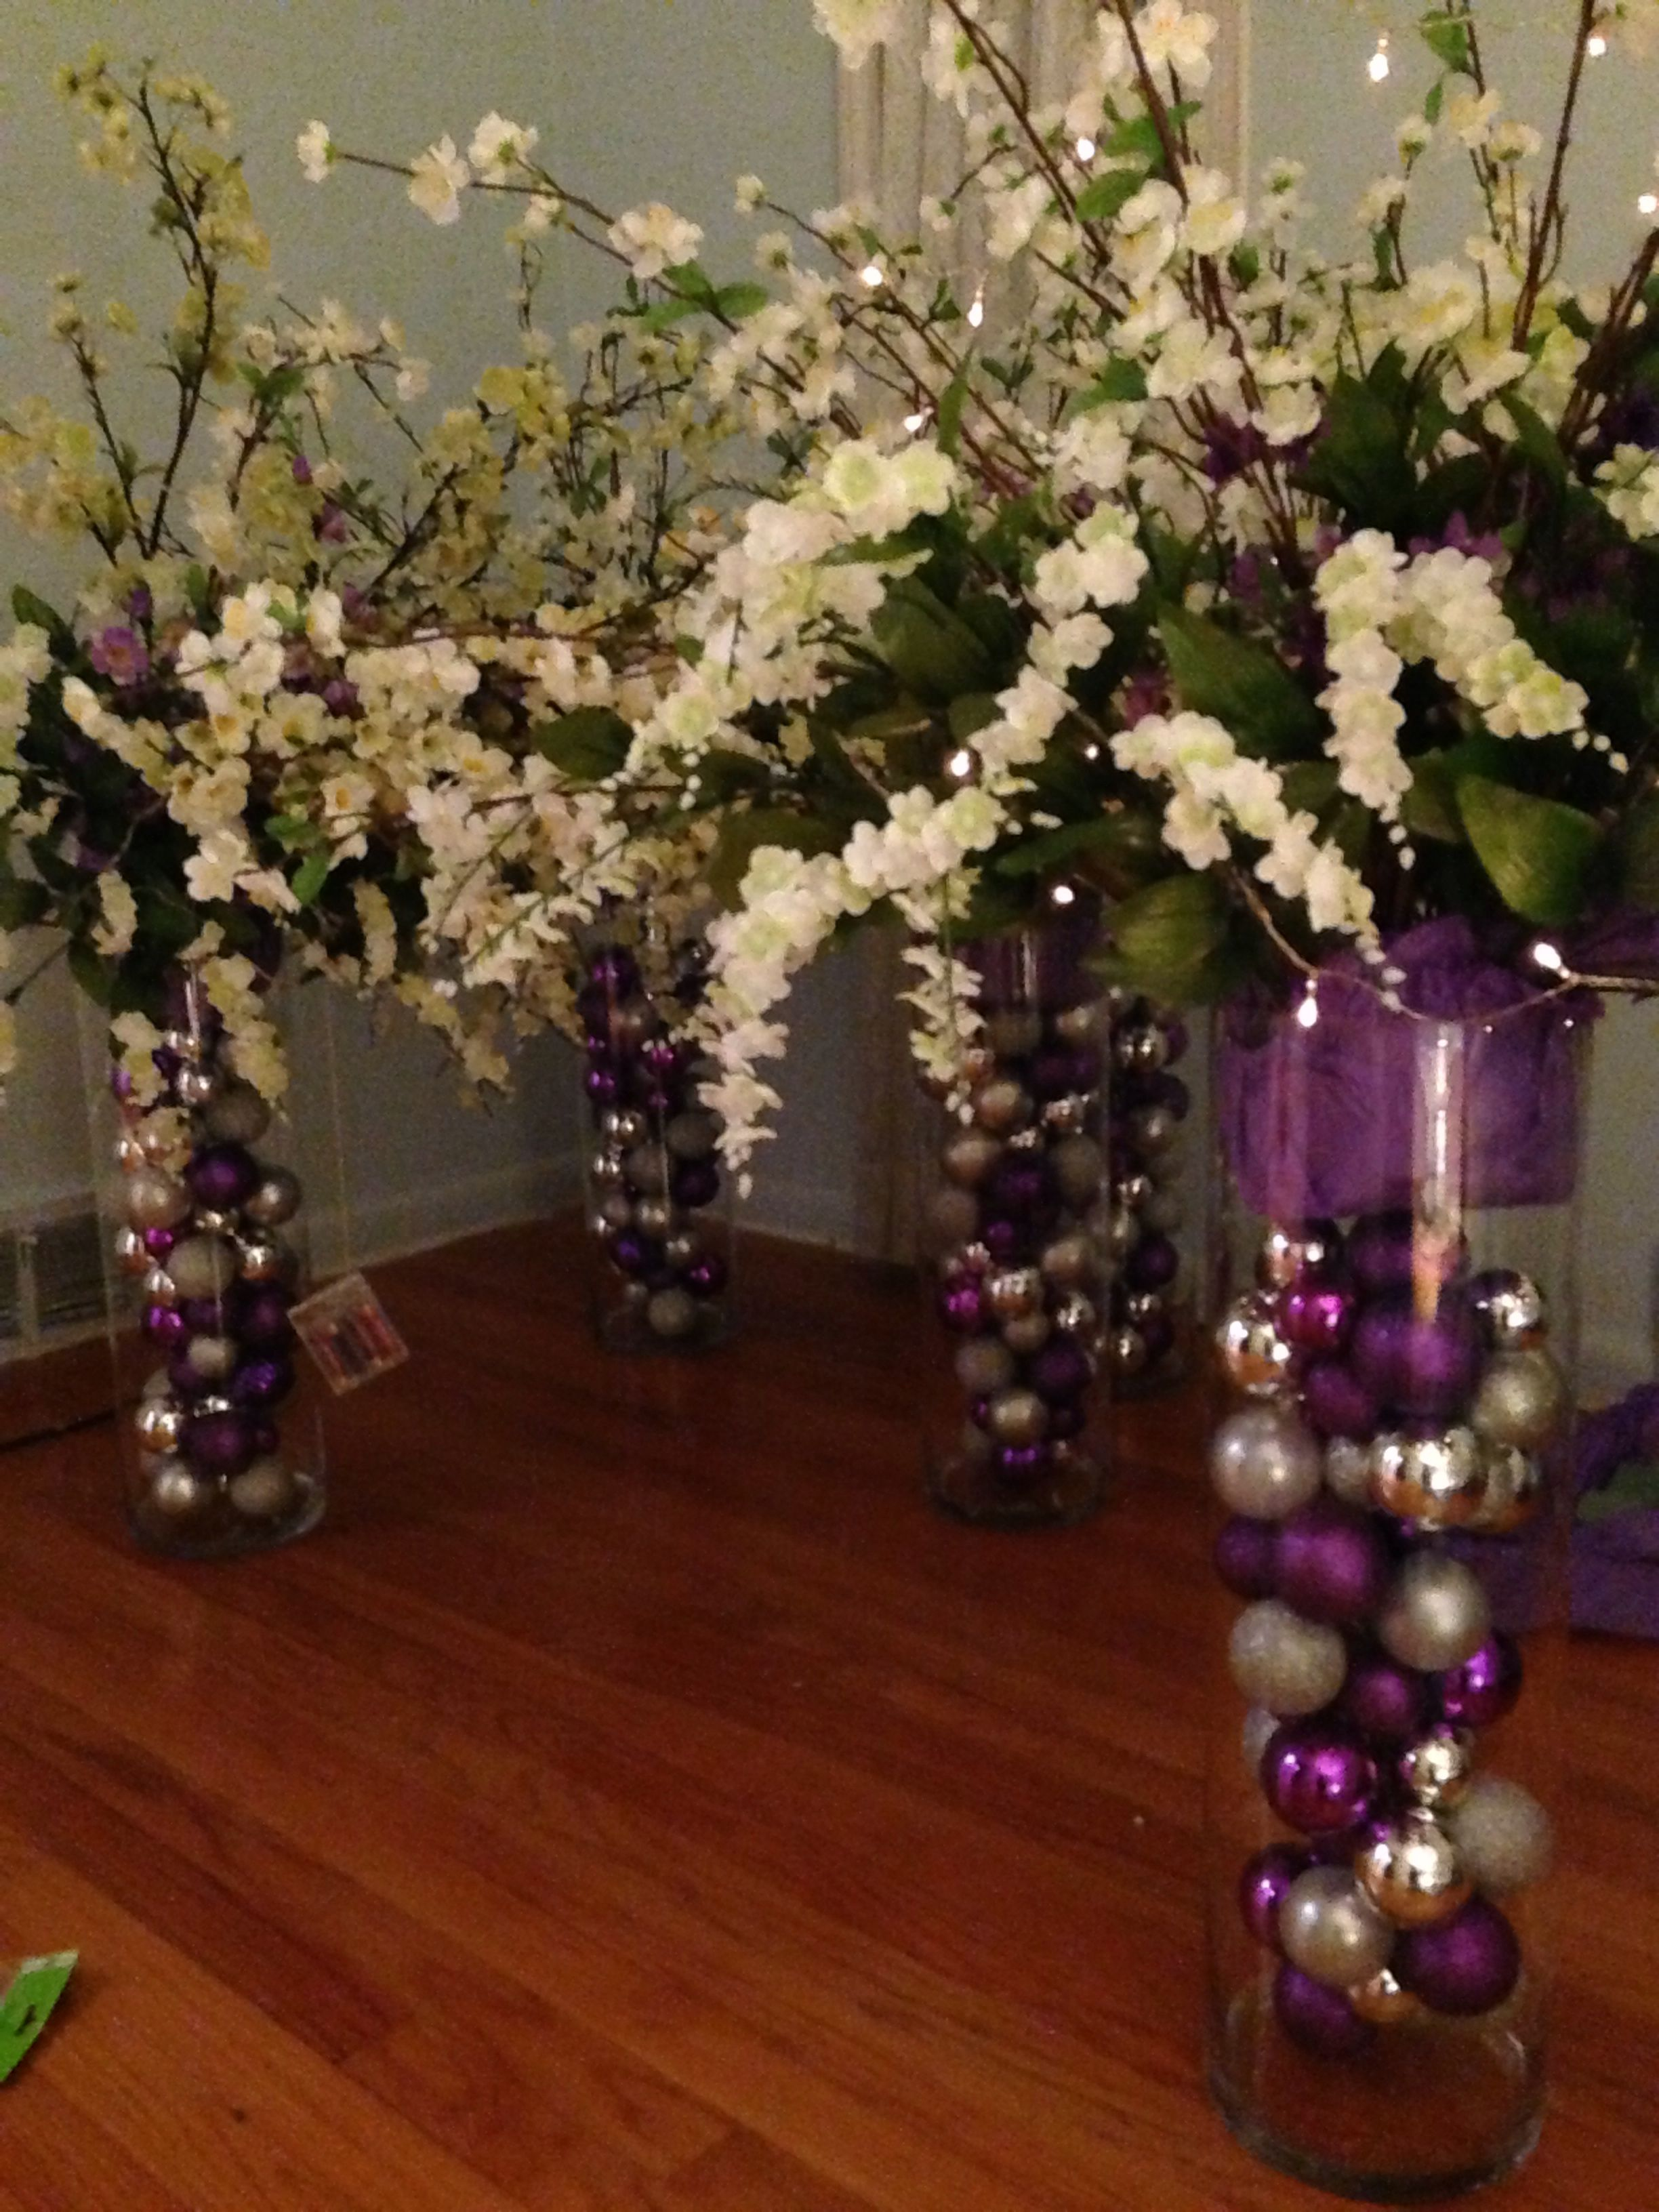 Tall Centerpieces With Purple And Silver Christmas Ornaments, White And